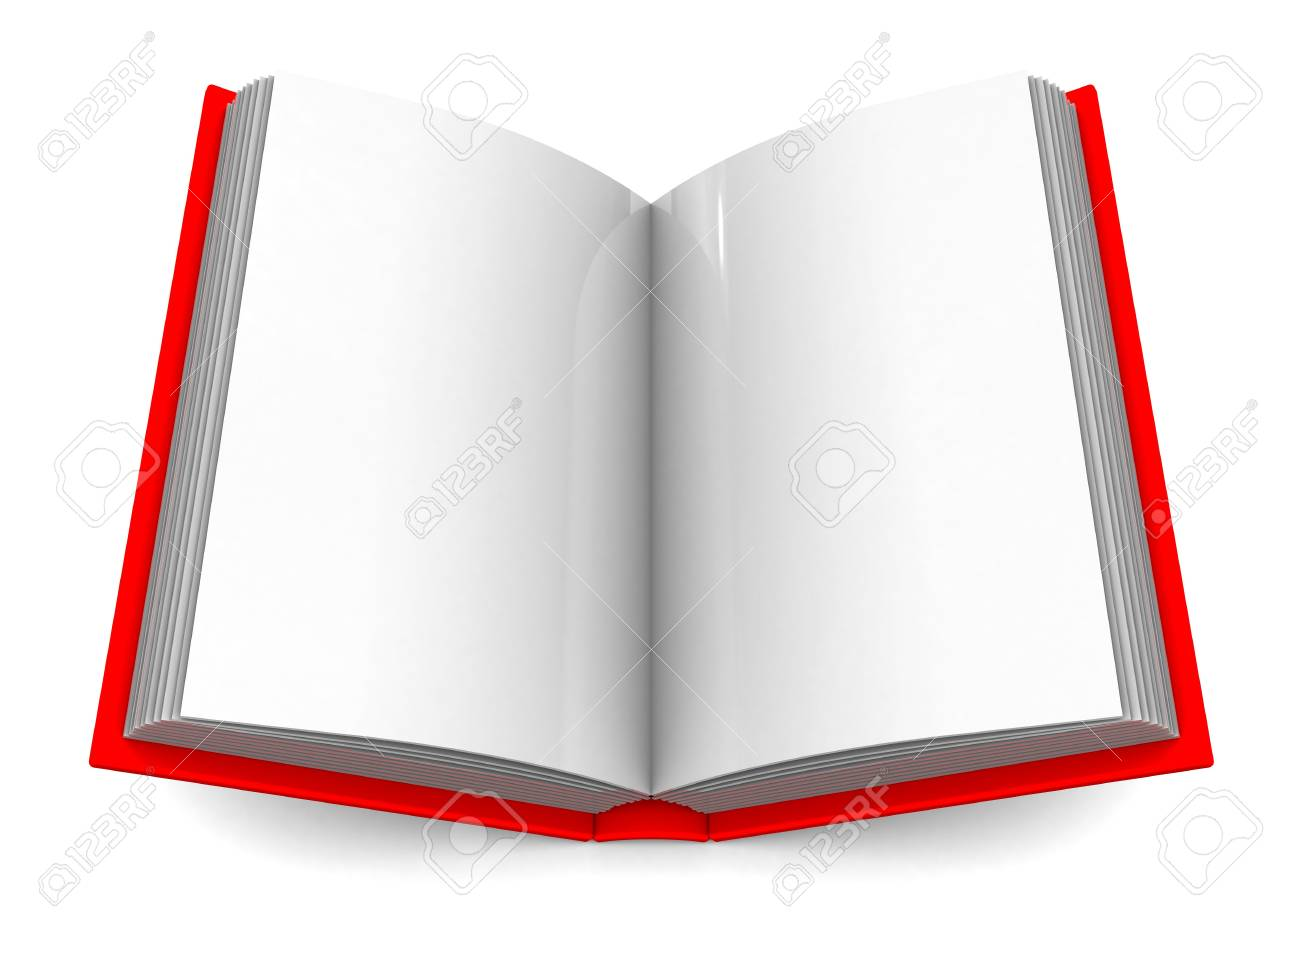 3d illustration of blank pages book over white background Stock Photo - 6003004